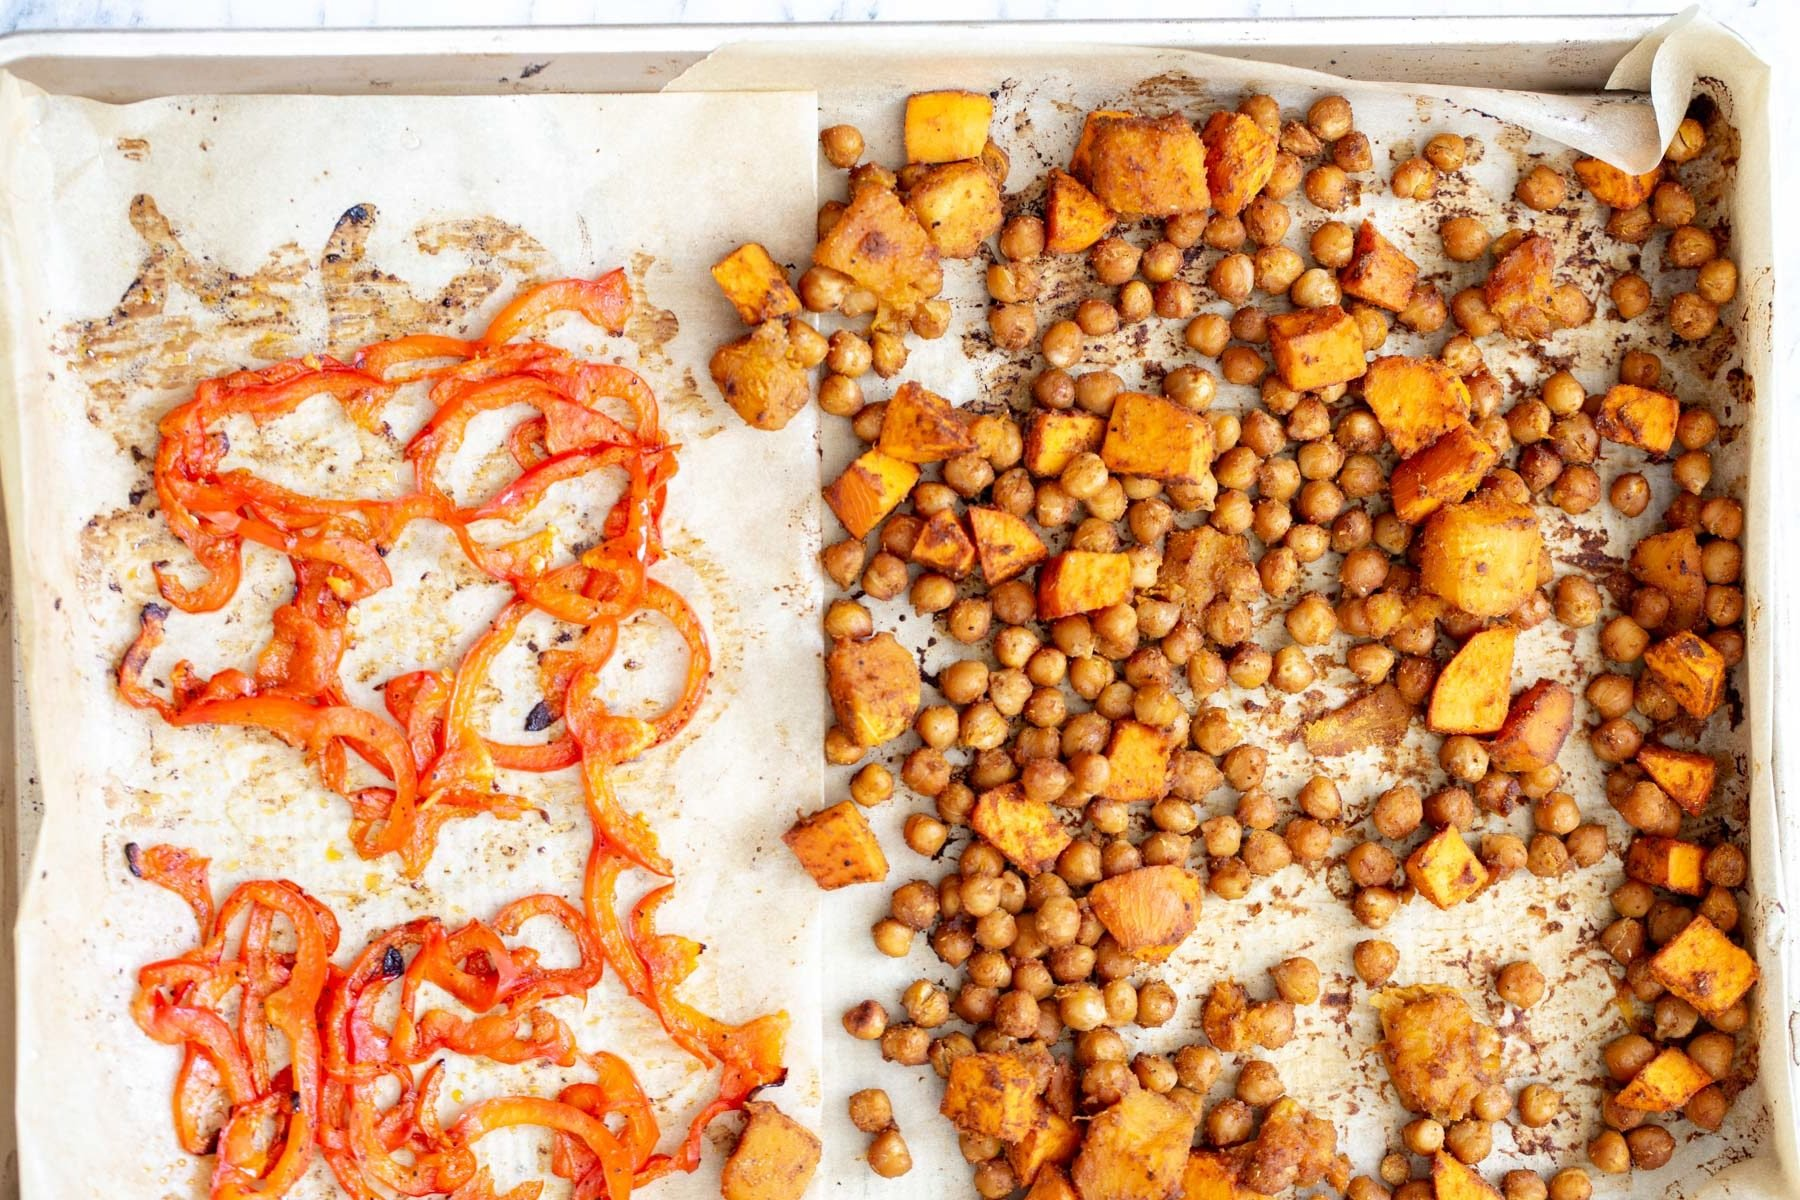 chickpeas, sweet potatoes and sliced red bell peppers being baked on a sheet pan for vegan salad bowl recipe